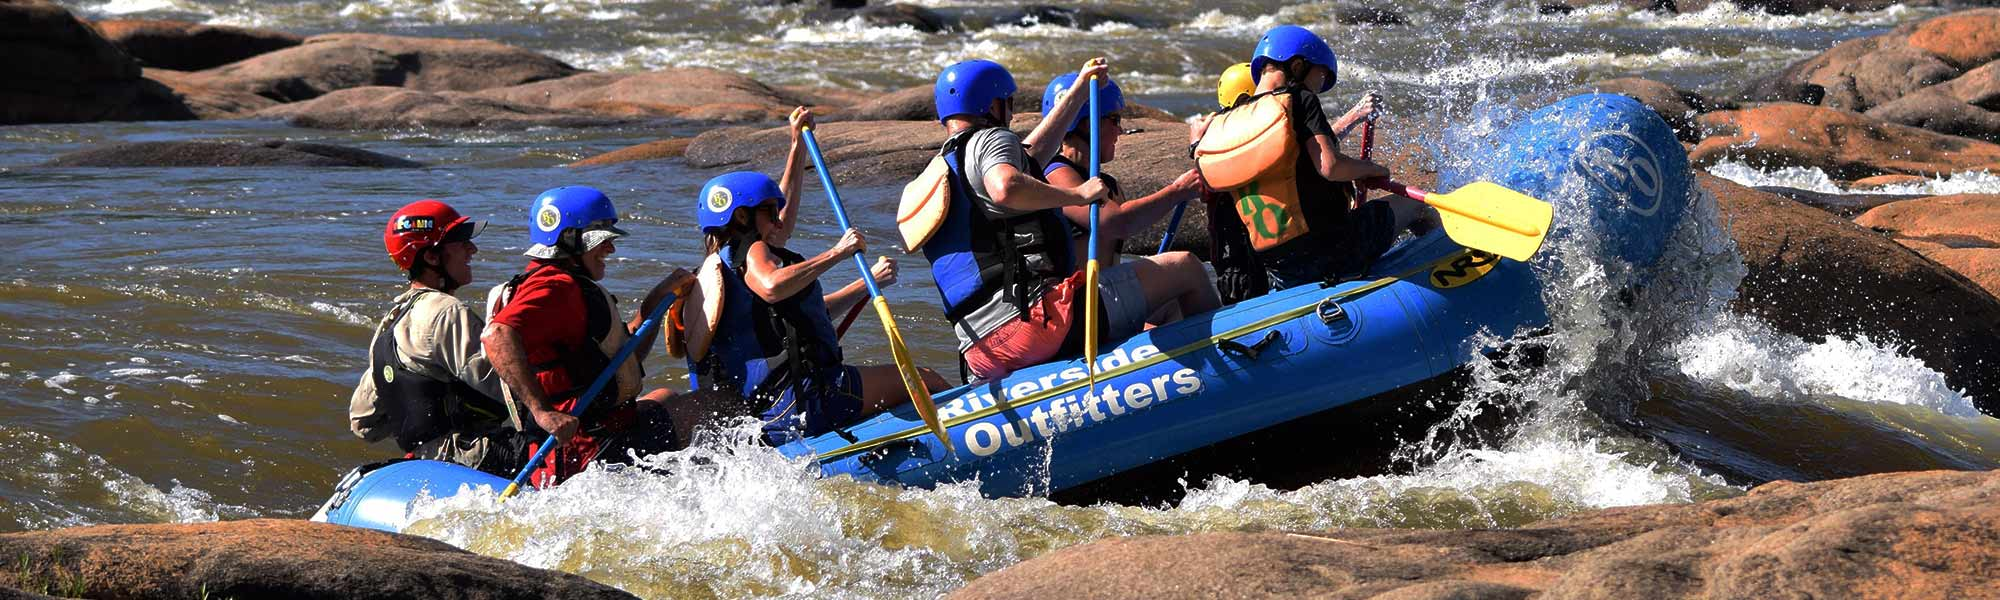 Rafting | Whitewater Rafting | Riverside Outfitters